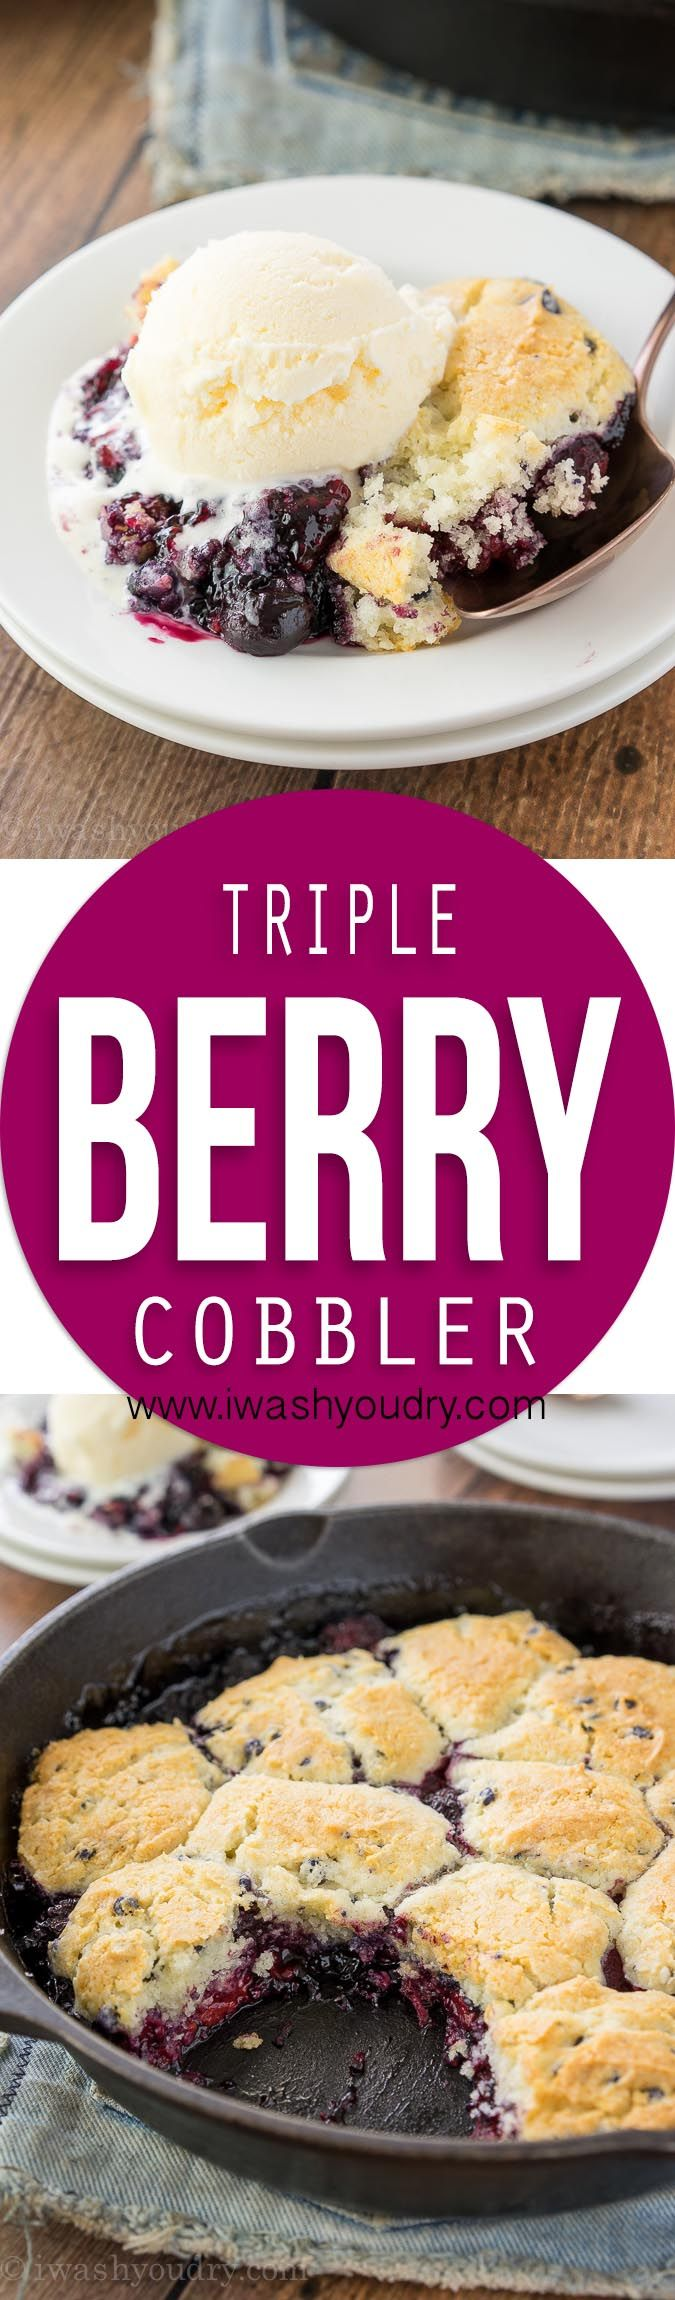 This Triple Berry Cobbler recipe is just 5 ingredients and made in just one skillet! The perfect easy dessert thanks to the Martha White muffin mix!